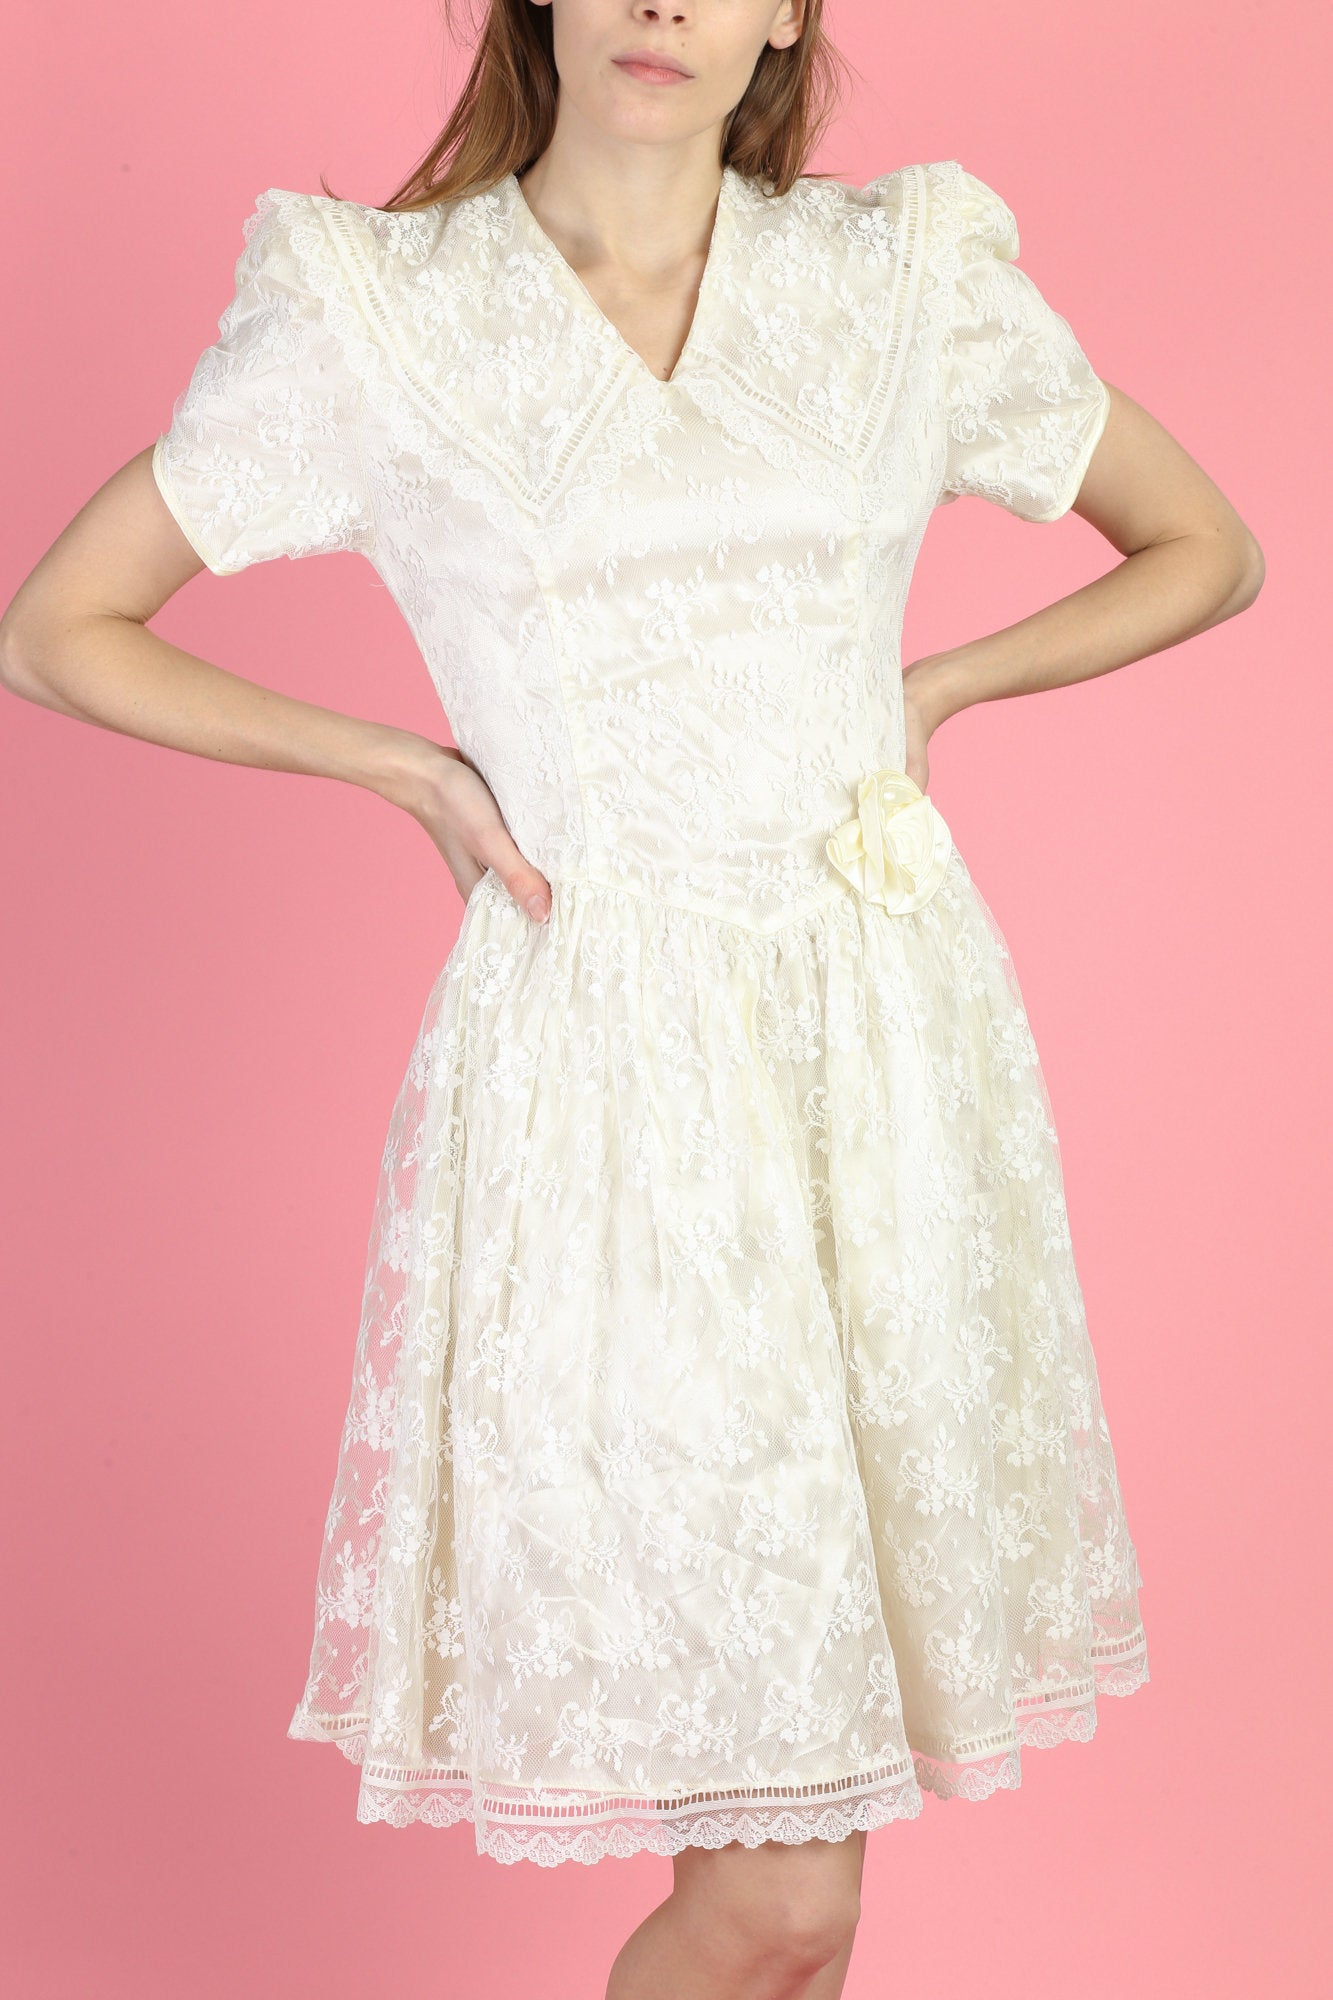 80s Gunne Sax Lace Puff Sleeve Dress - Extra Small